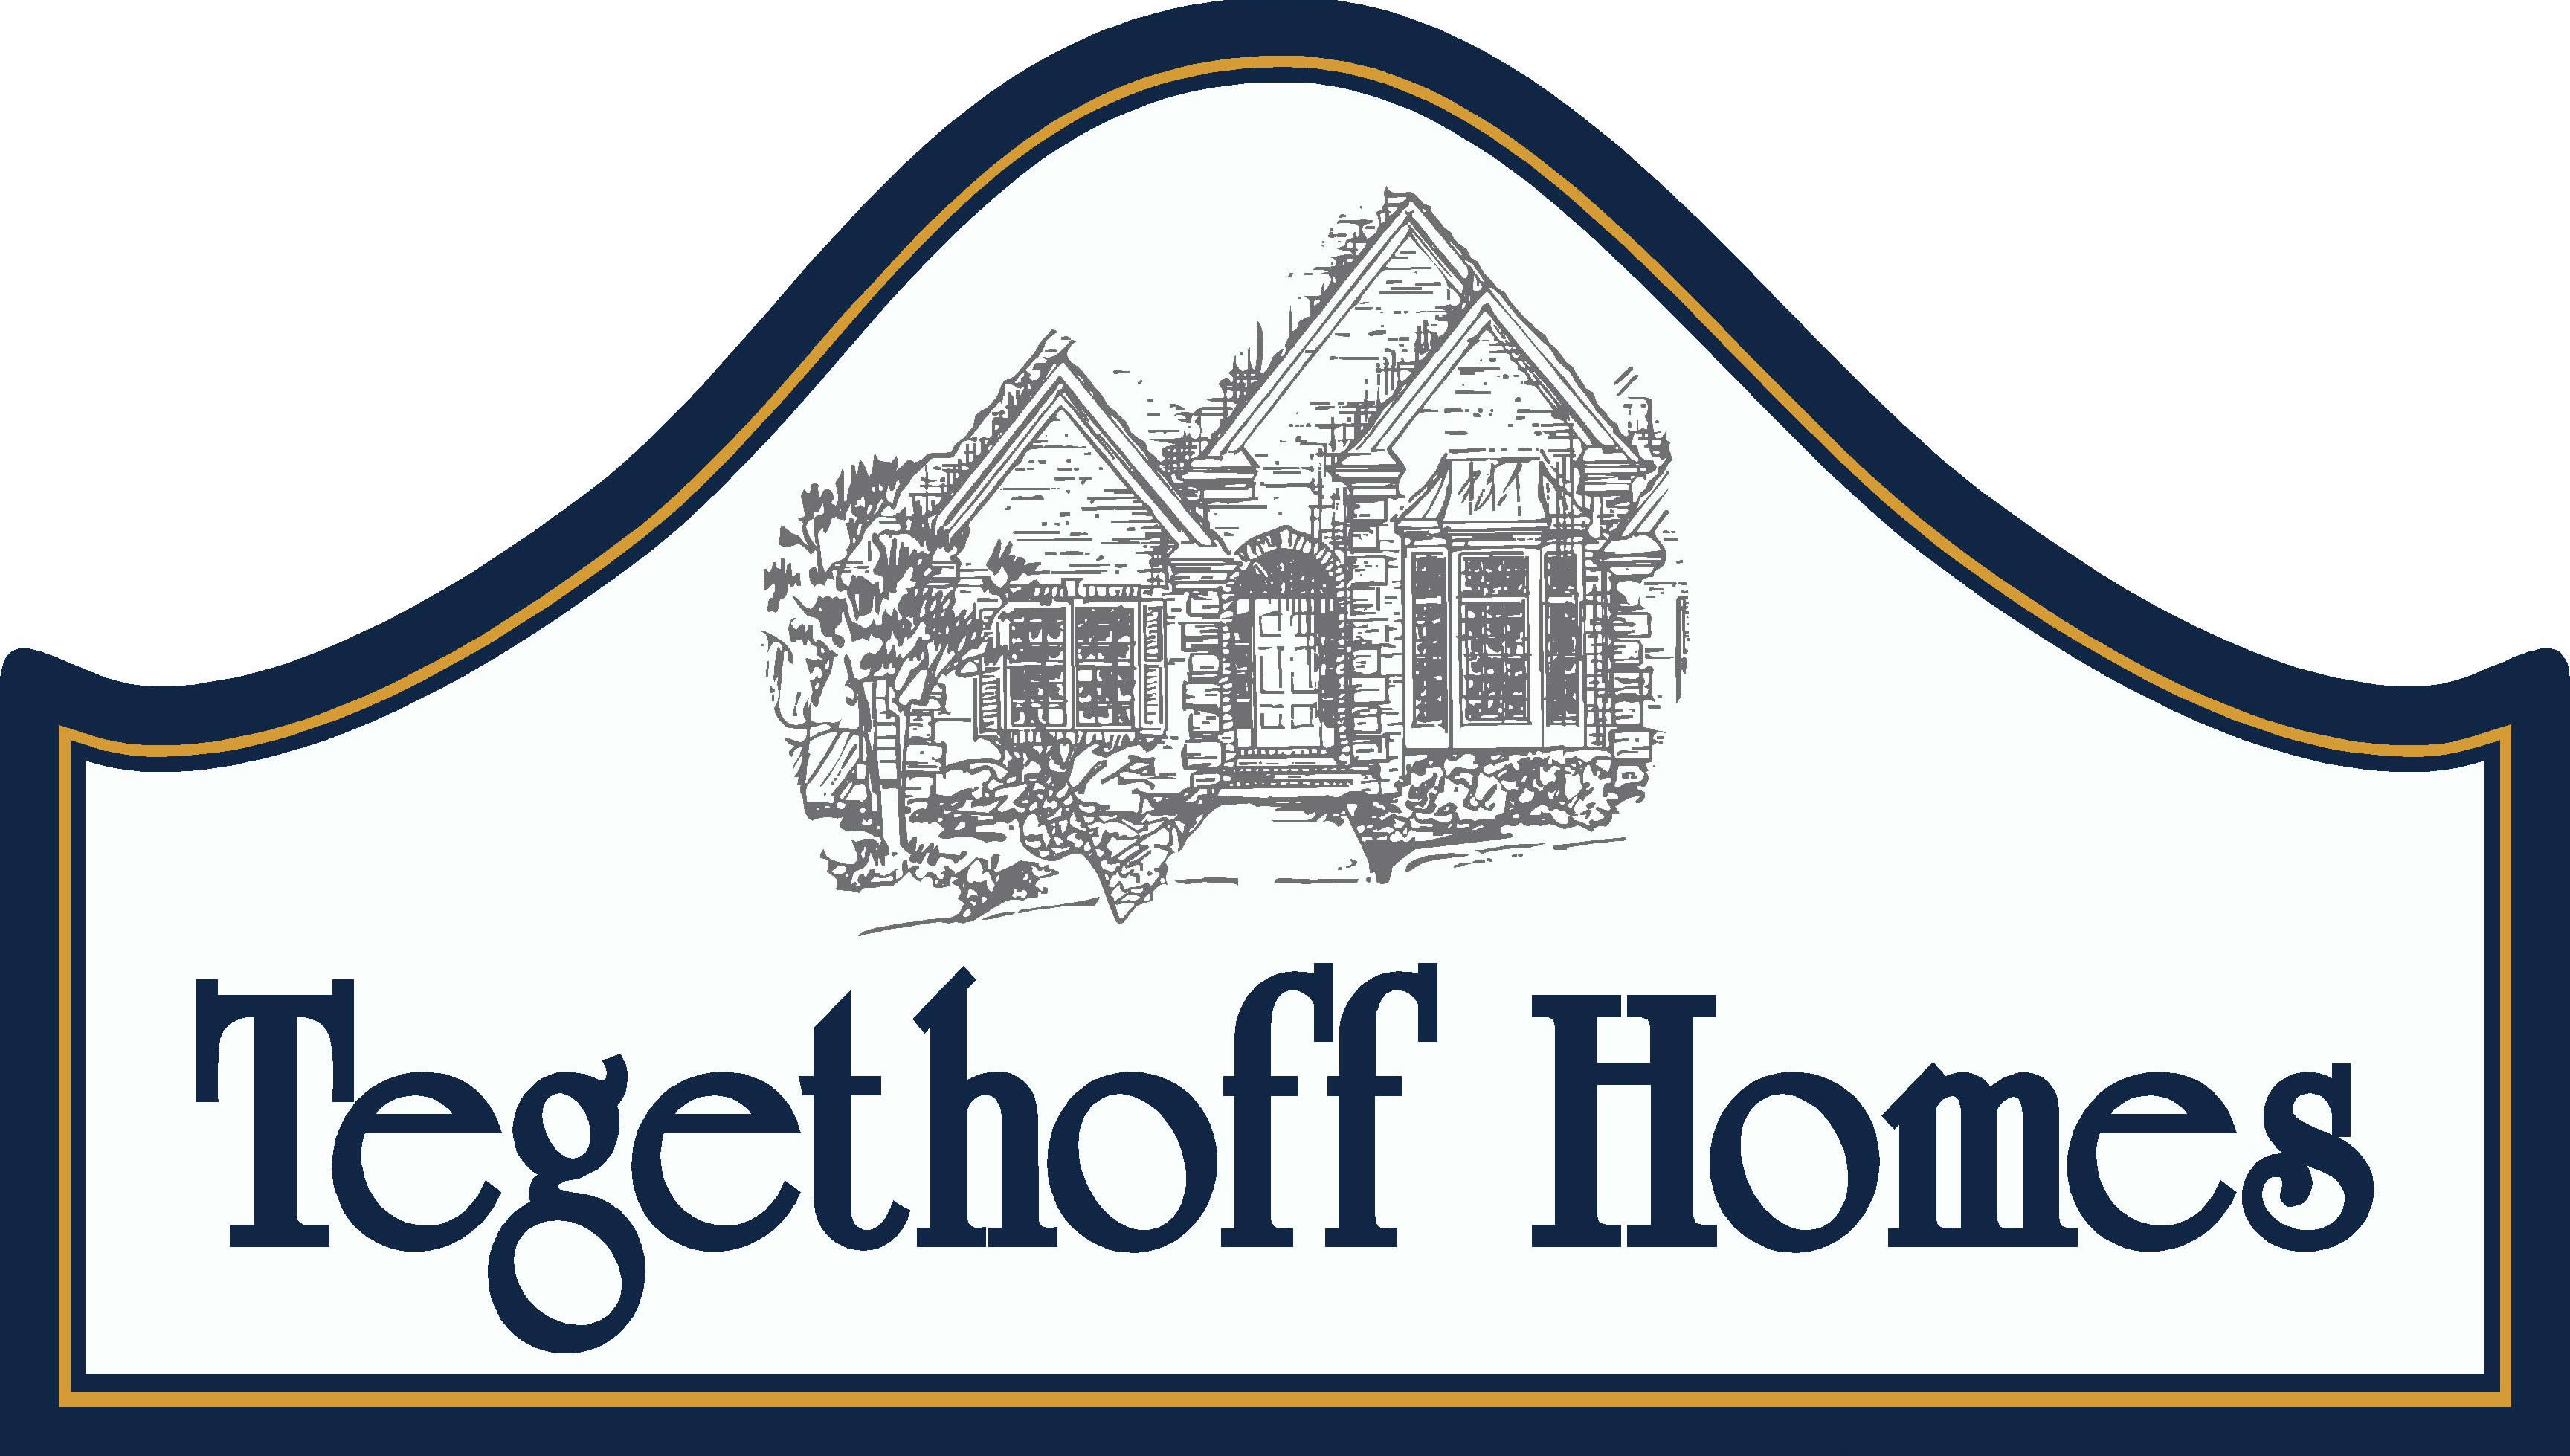 Tegethoff Homes